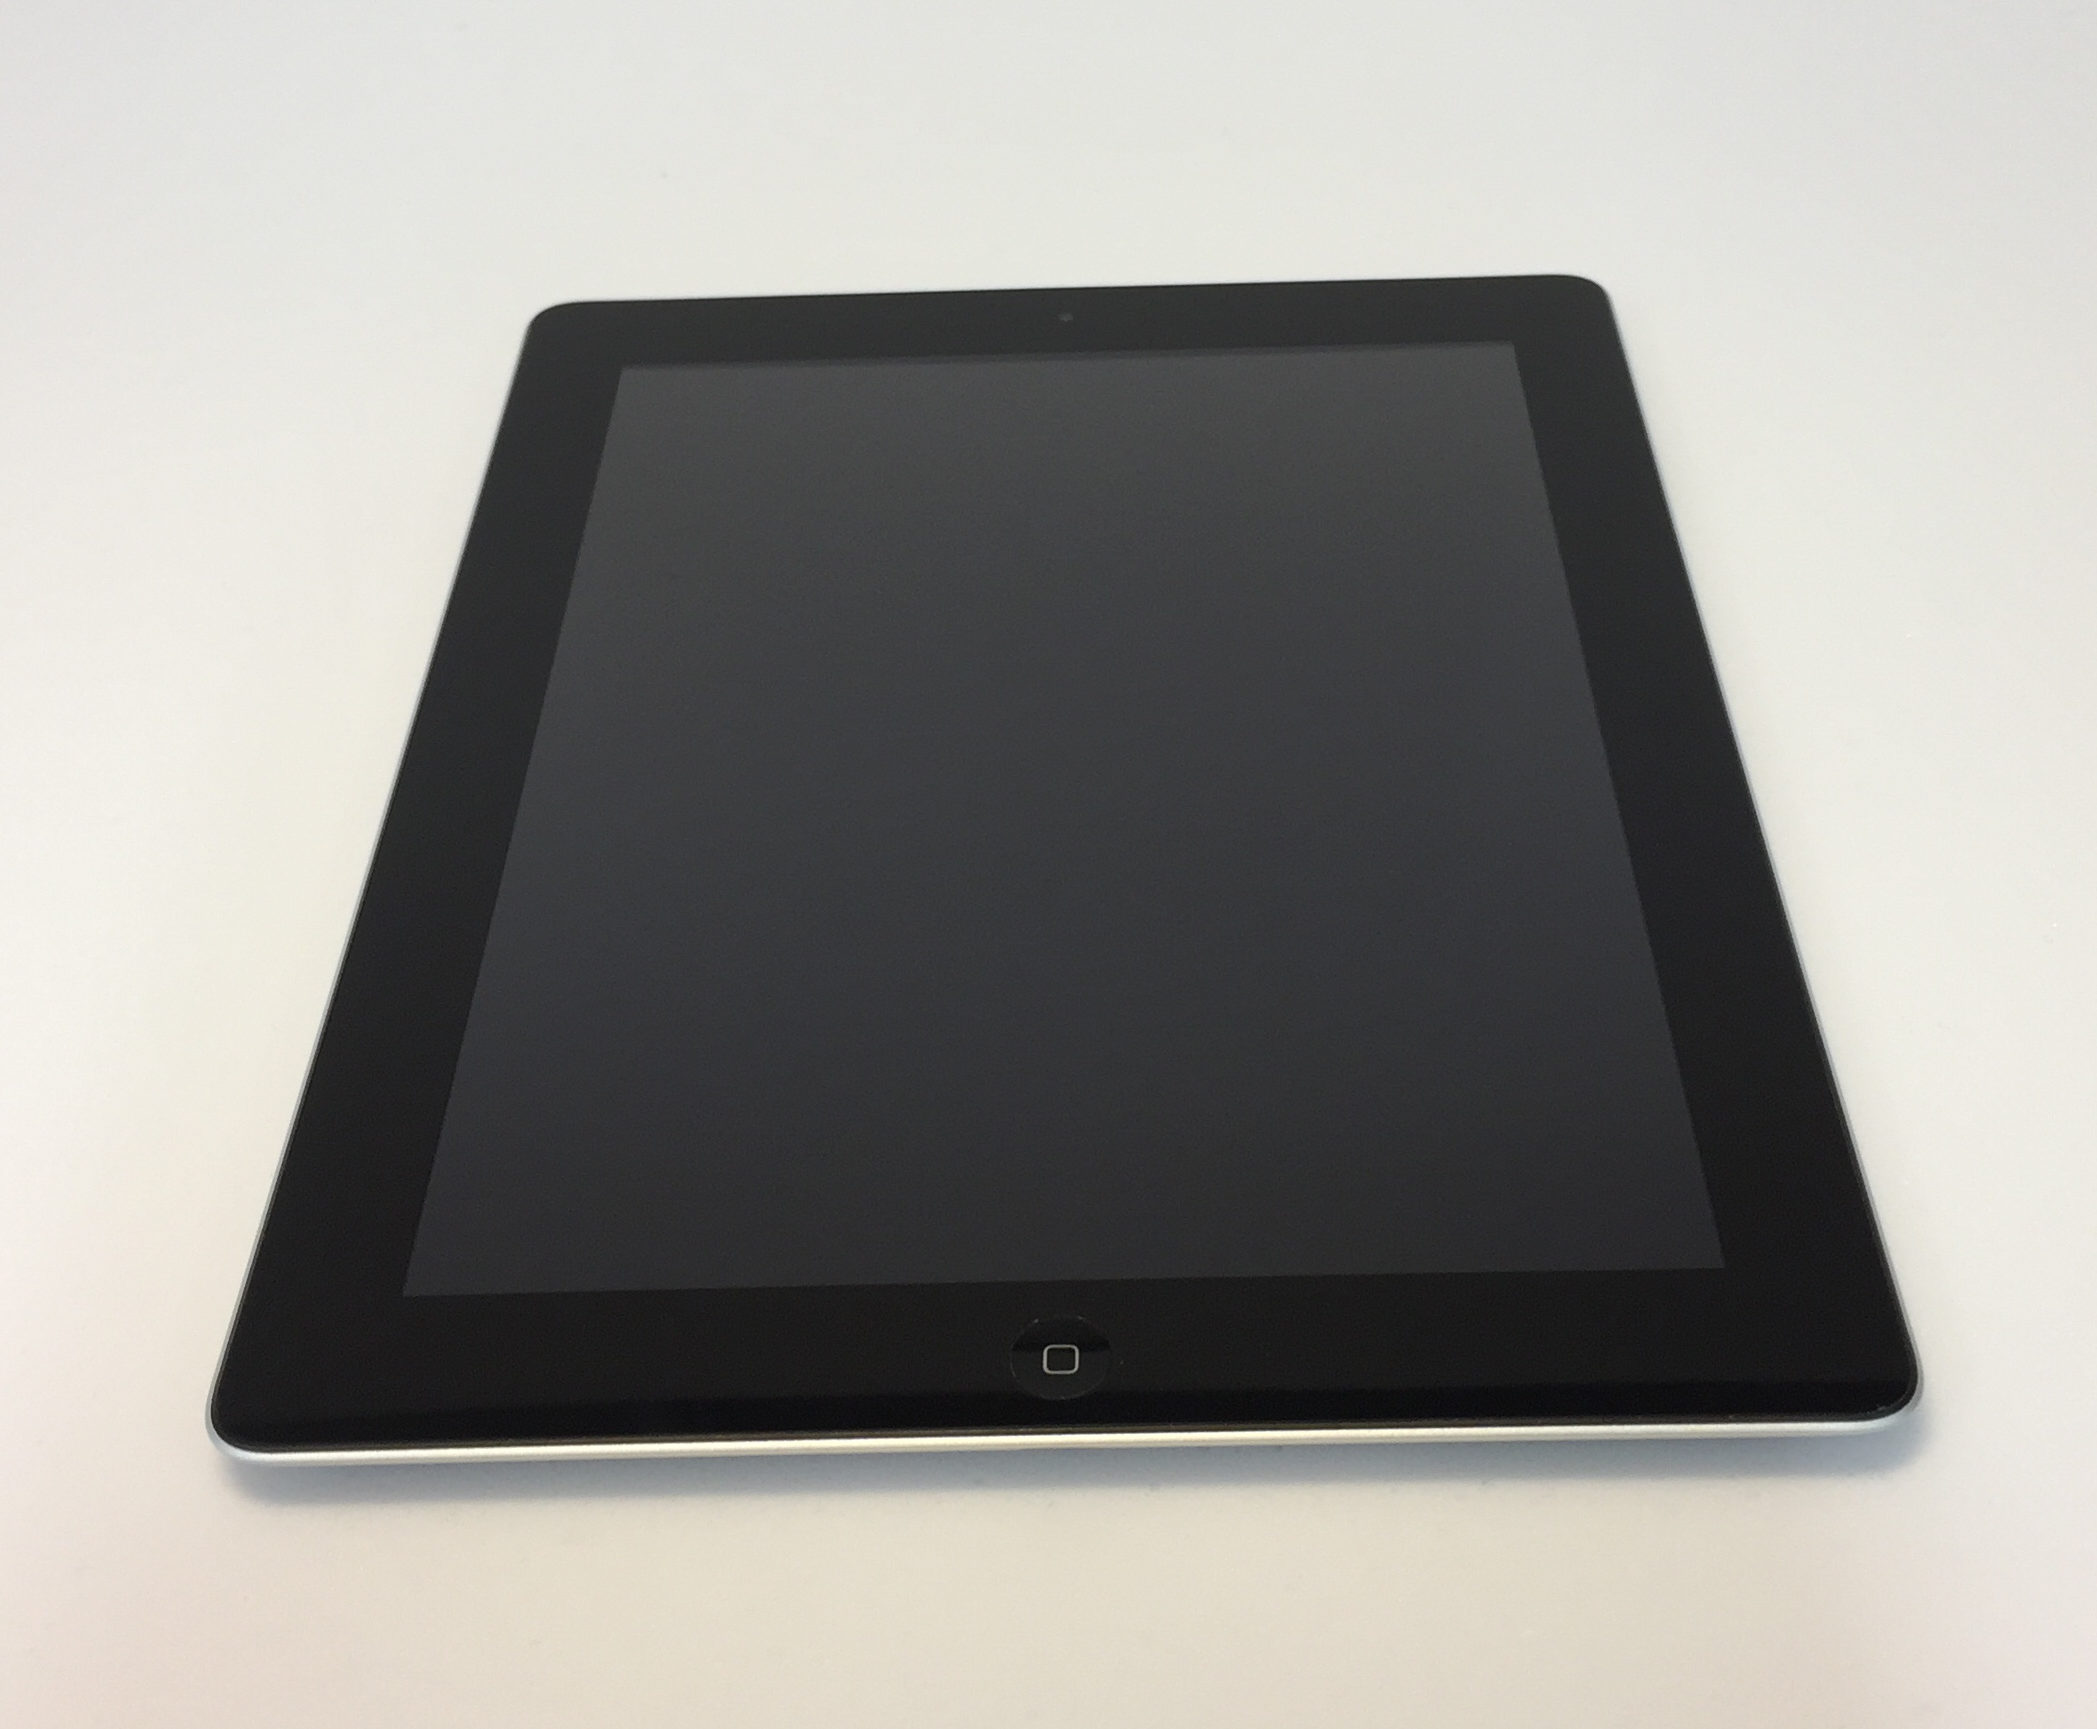 iPad 4 Wi-Fi + Cellular 64GB, 64 GB, Black, Kuva 1